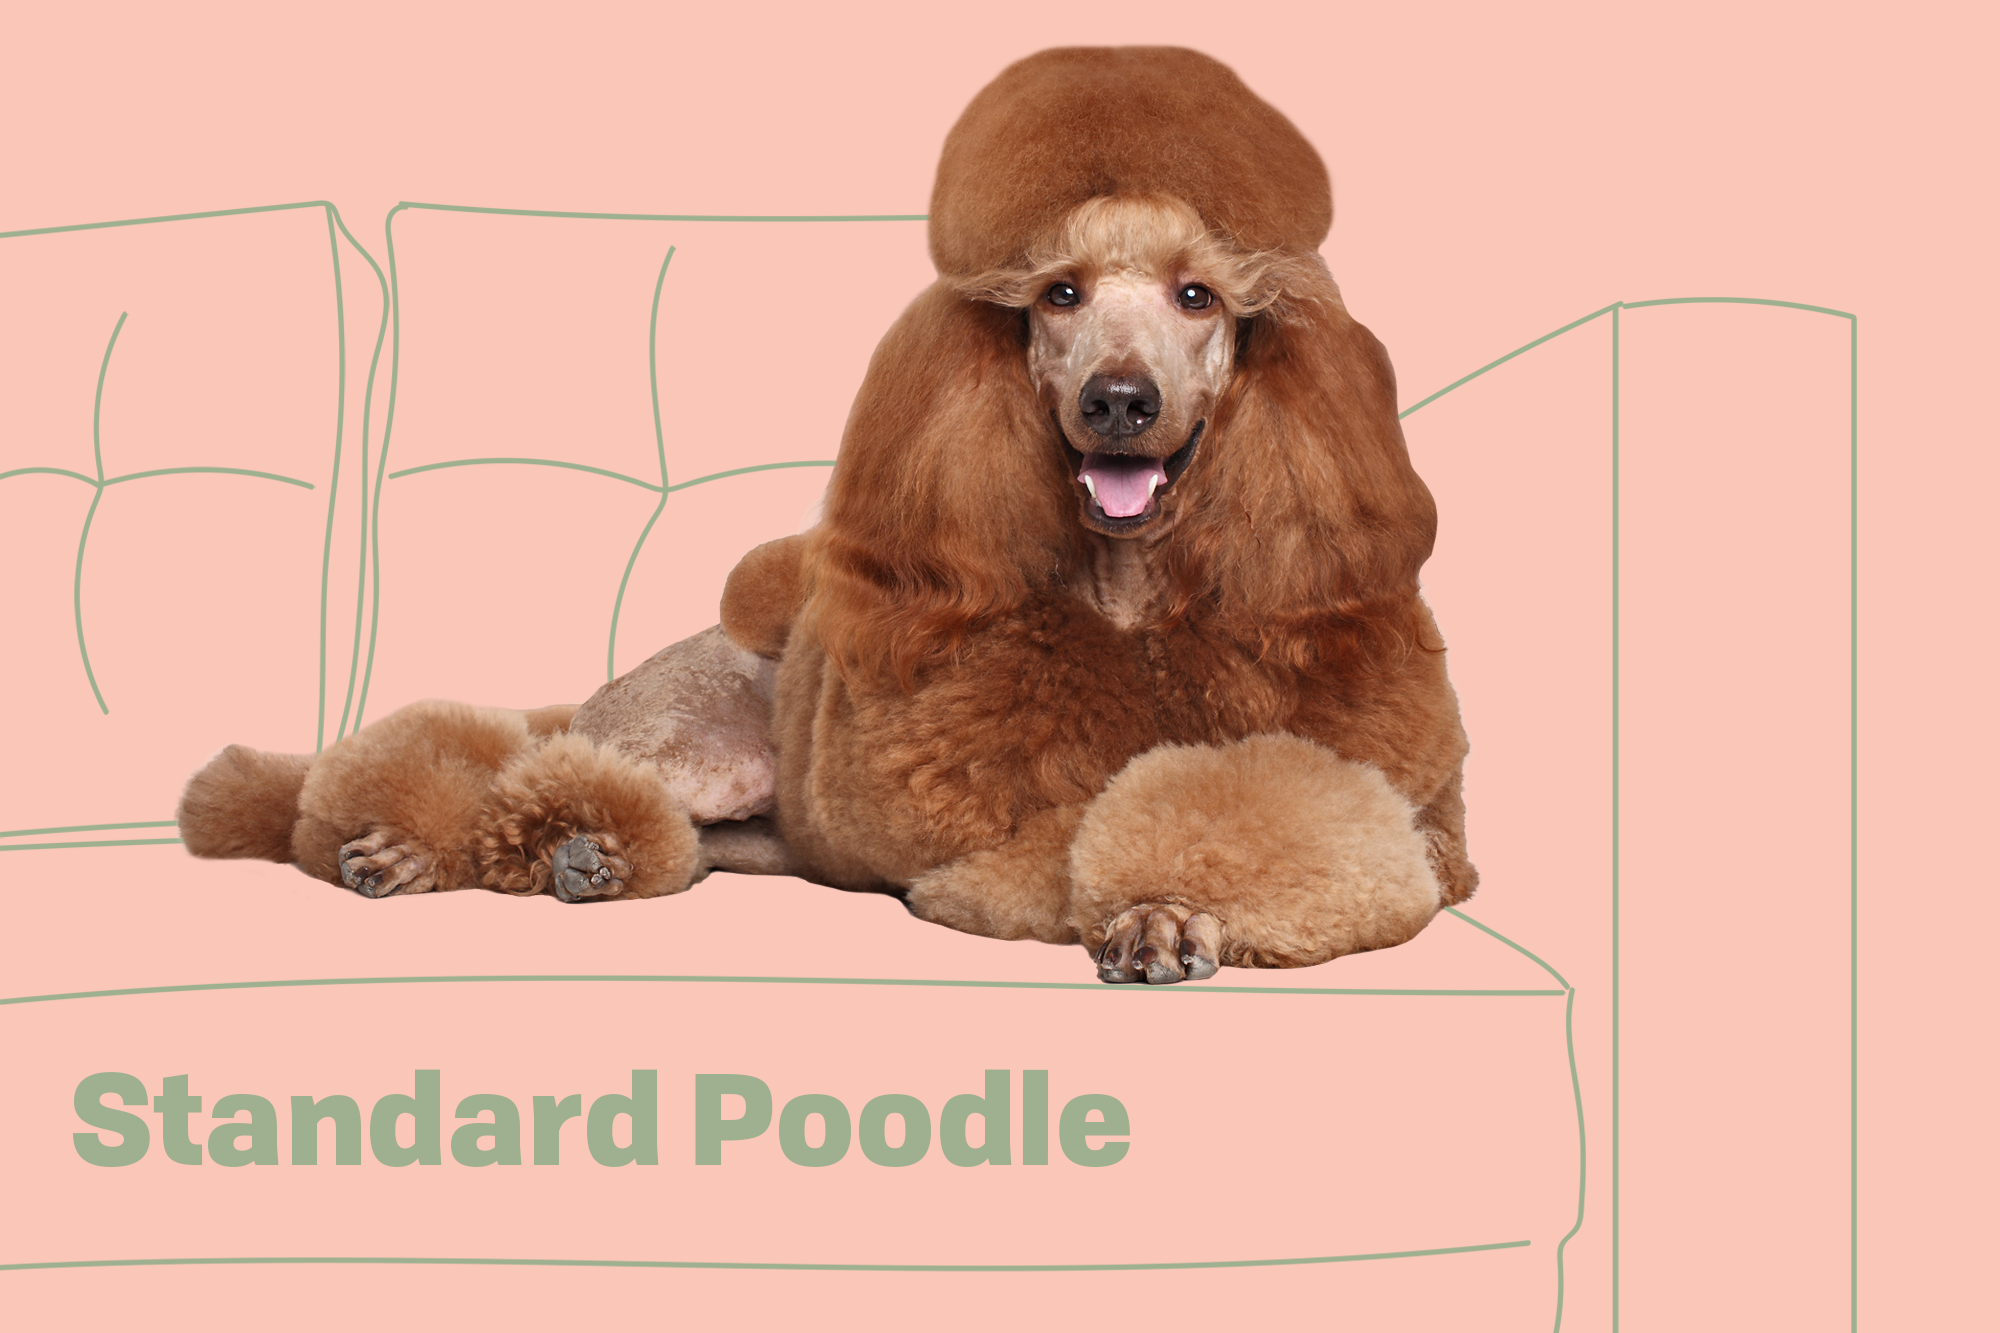 Standard Poodle Breed Photo